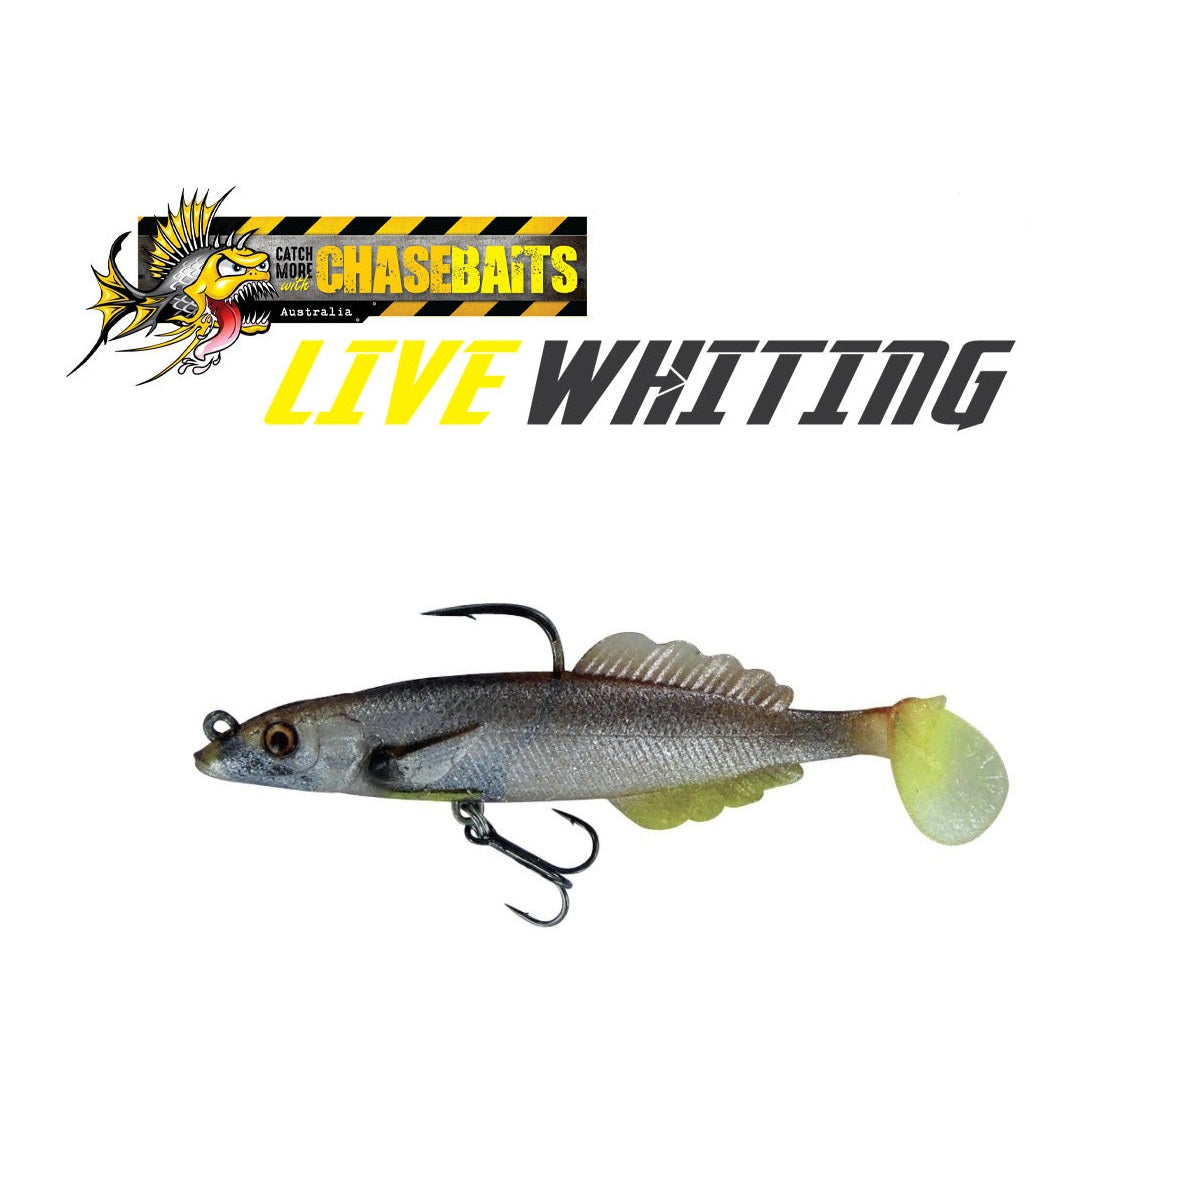 Chasebaits Live Whiting Soft Plastic Lures